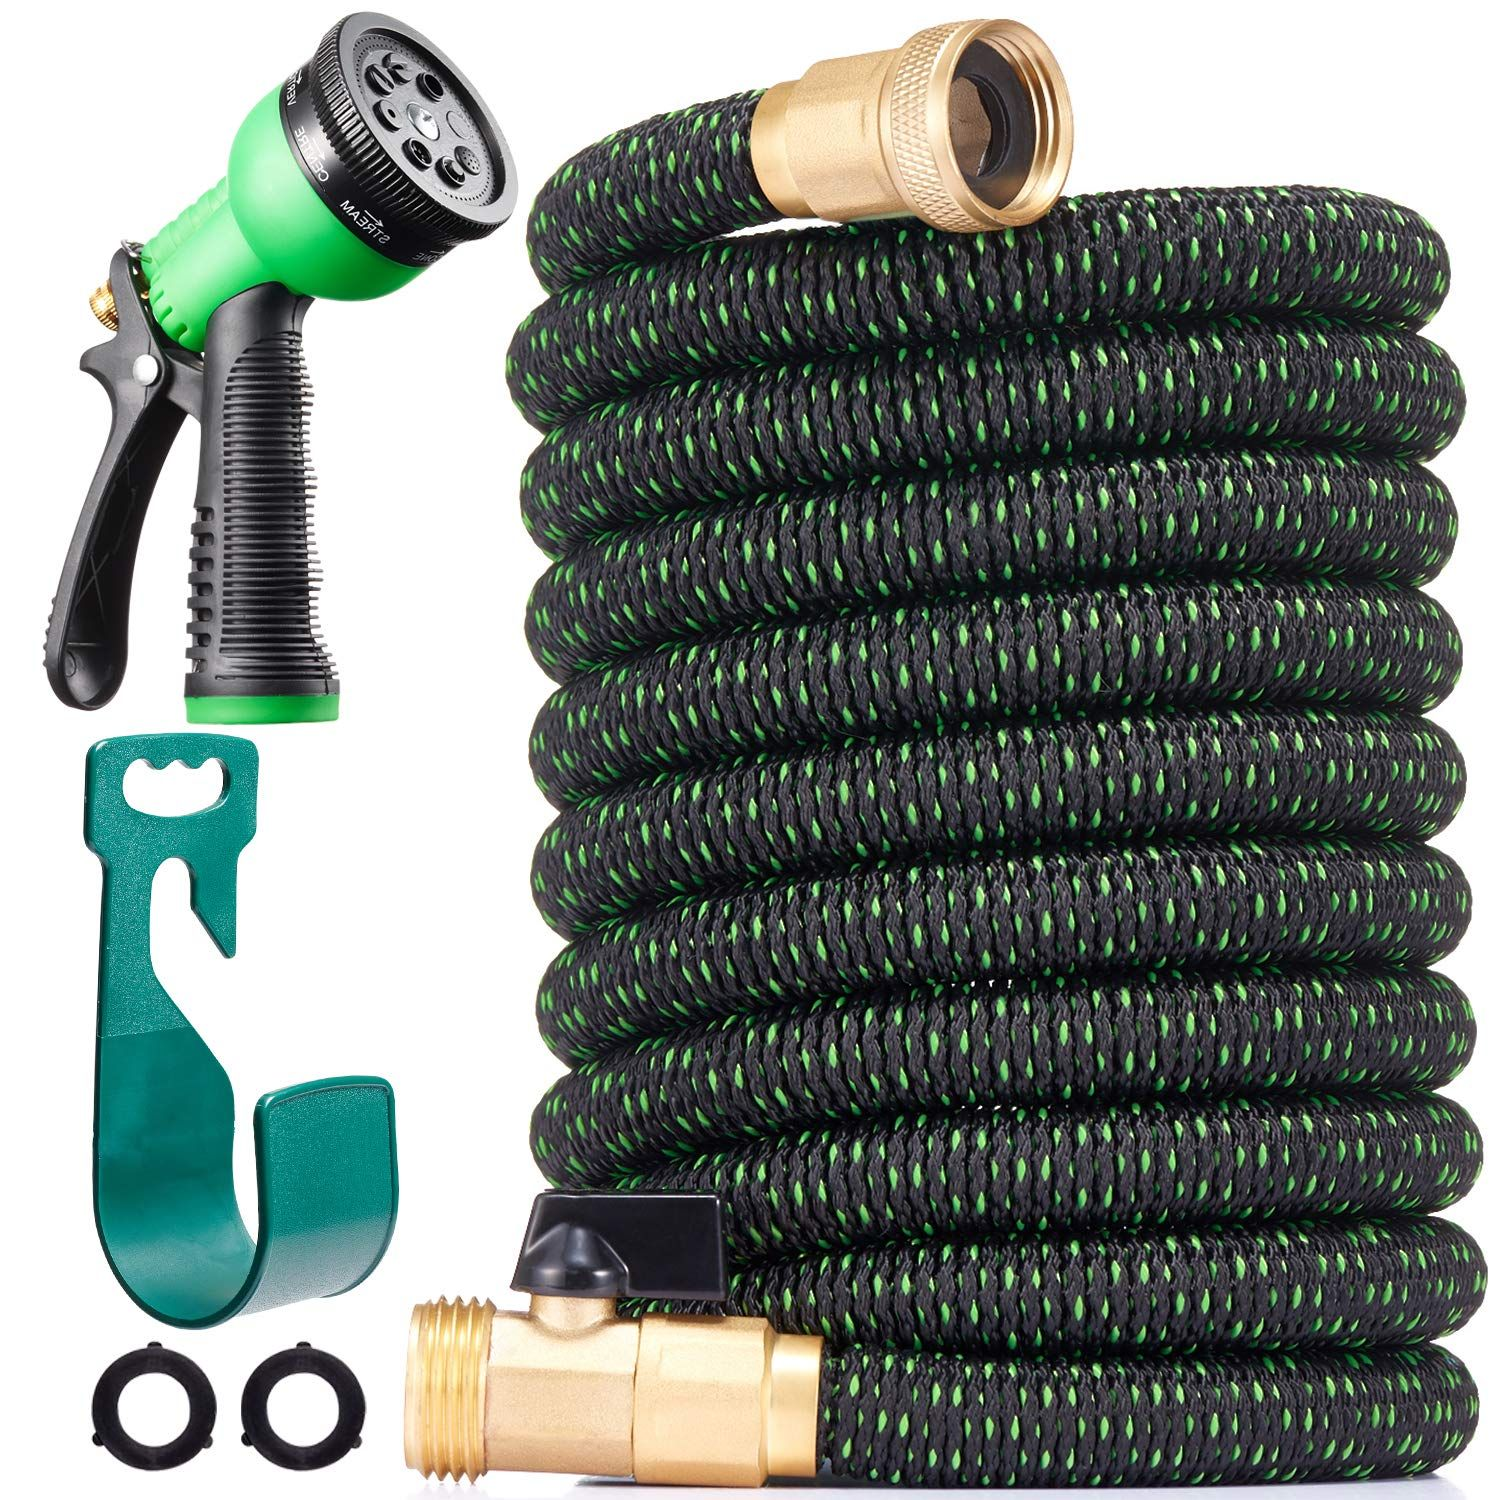 Linquo 125 Ft Expandable Garden Retractable Water Hose Hose Holder Retractable Hose